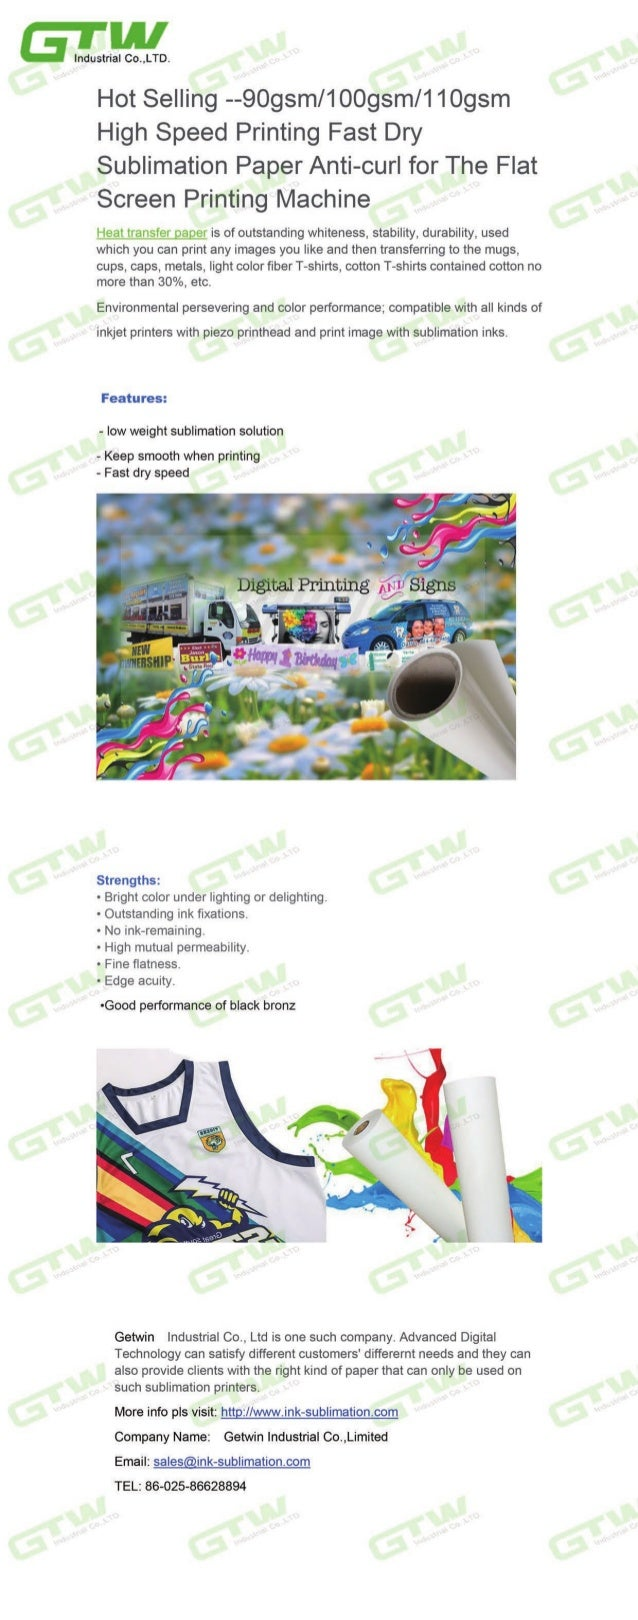 Hot selling--90gsm/100gsm/110gsm High Speed Printing Fast Dry Sublimation Paper Anti-curl for The Flat Screen Printing Mac...